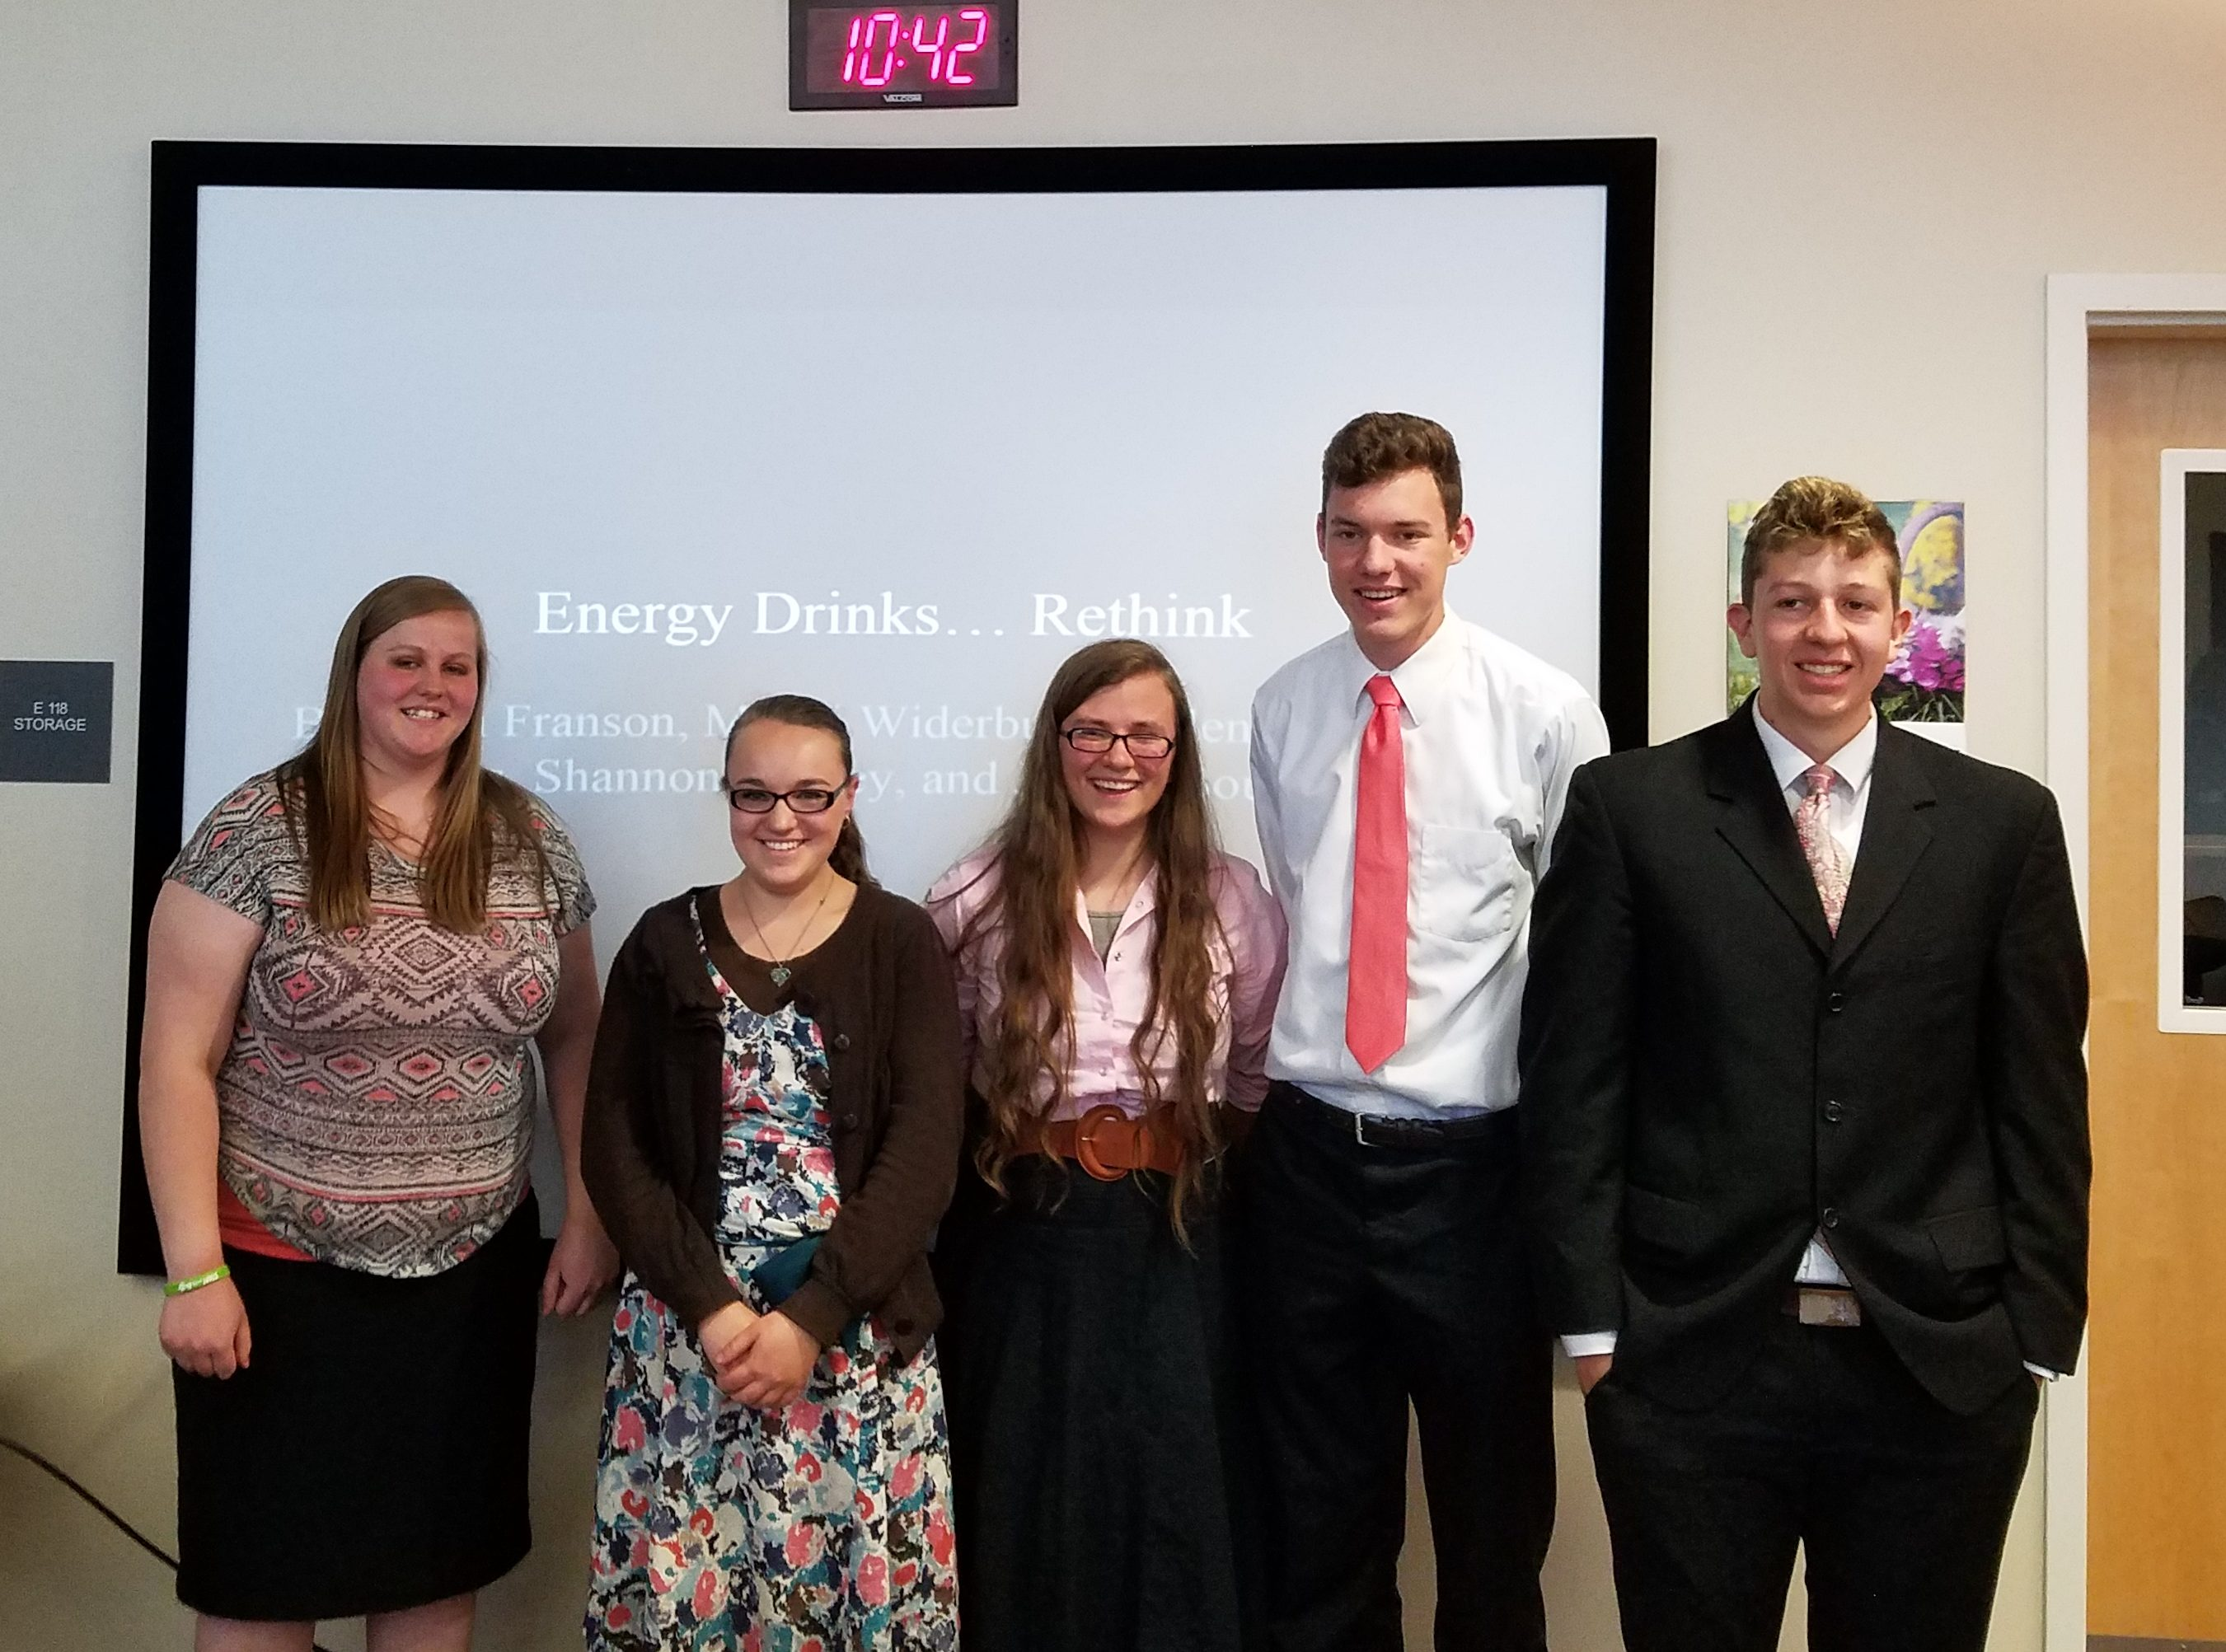 Mandi Widerburg, Valentine  PasseCarlus, Shannon Wilkey, and Joshua Burgeous after presenting their project citizen on Energy Drinks and answering questions